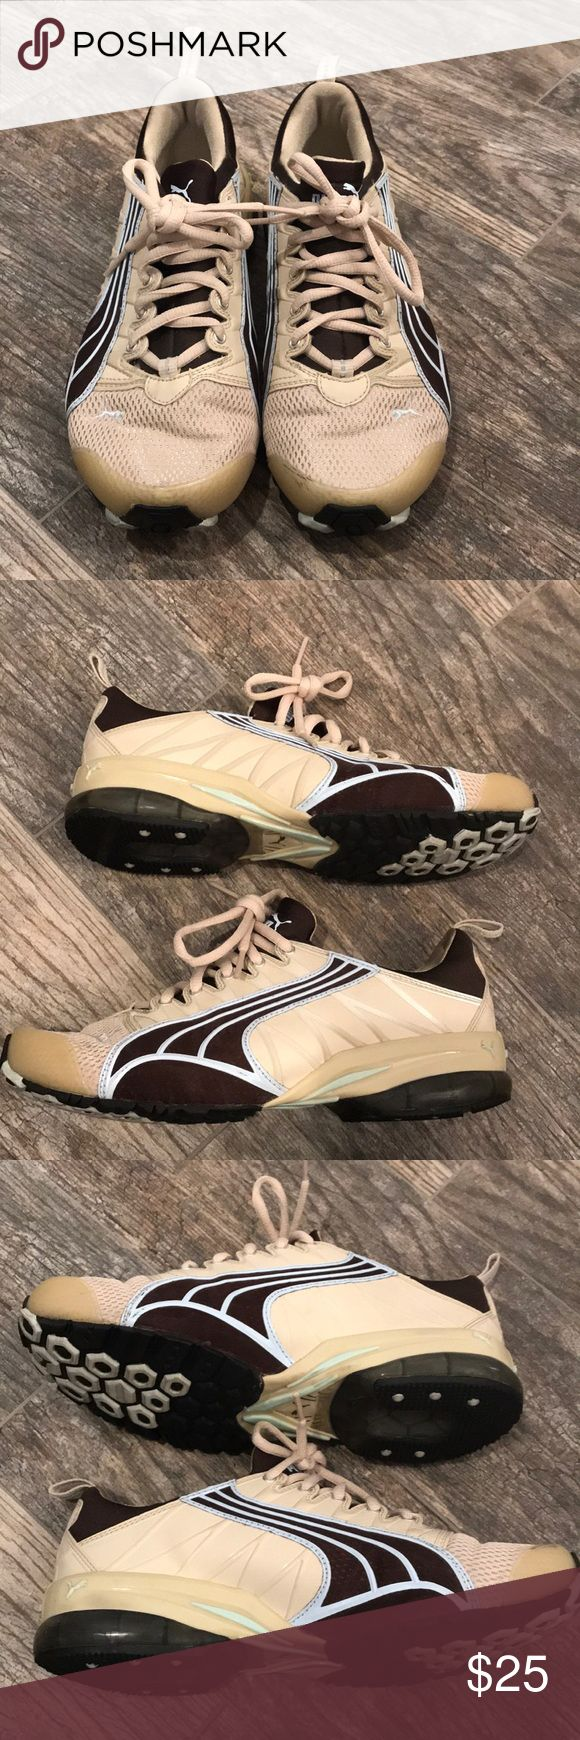 Puma tennis shoes Puma tennis shoes size 7.5 tan brown and baby blue. Excellent condition hardly worn. Tong is attached like a sock fit tennis shoe. Clean smokefree home. Only worn a couple times Puma Shoes Athletic Shoes